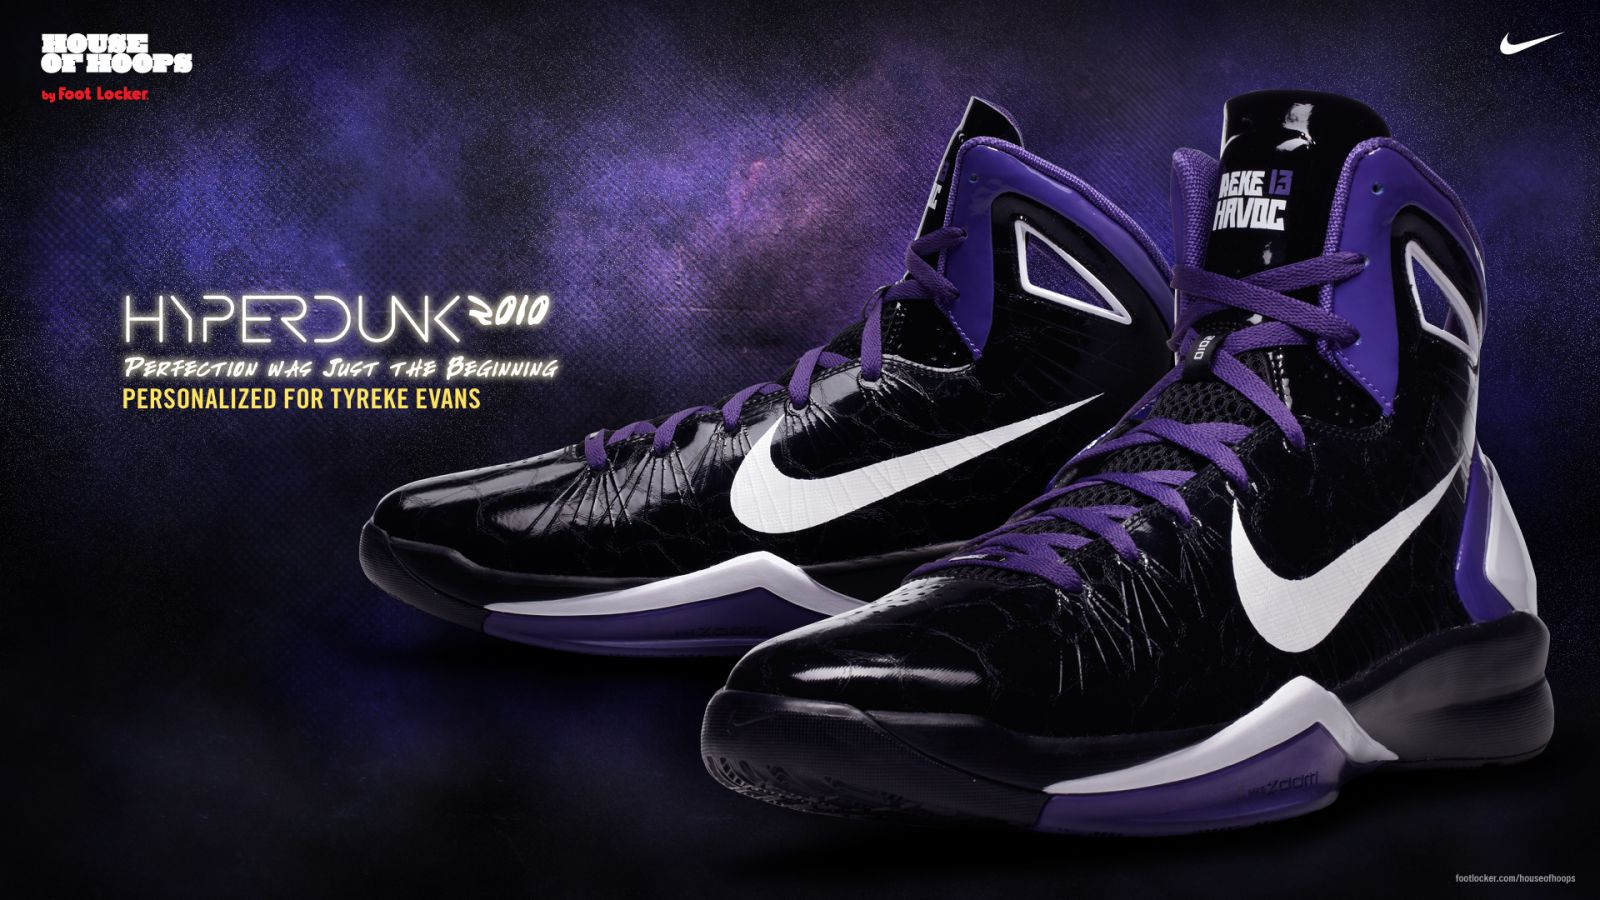 e6c7b572e229 Nike Hyperdunk 2010 - Tyreke Evans Away Player Edition